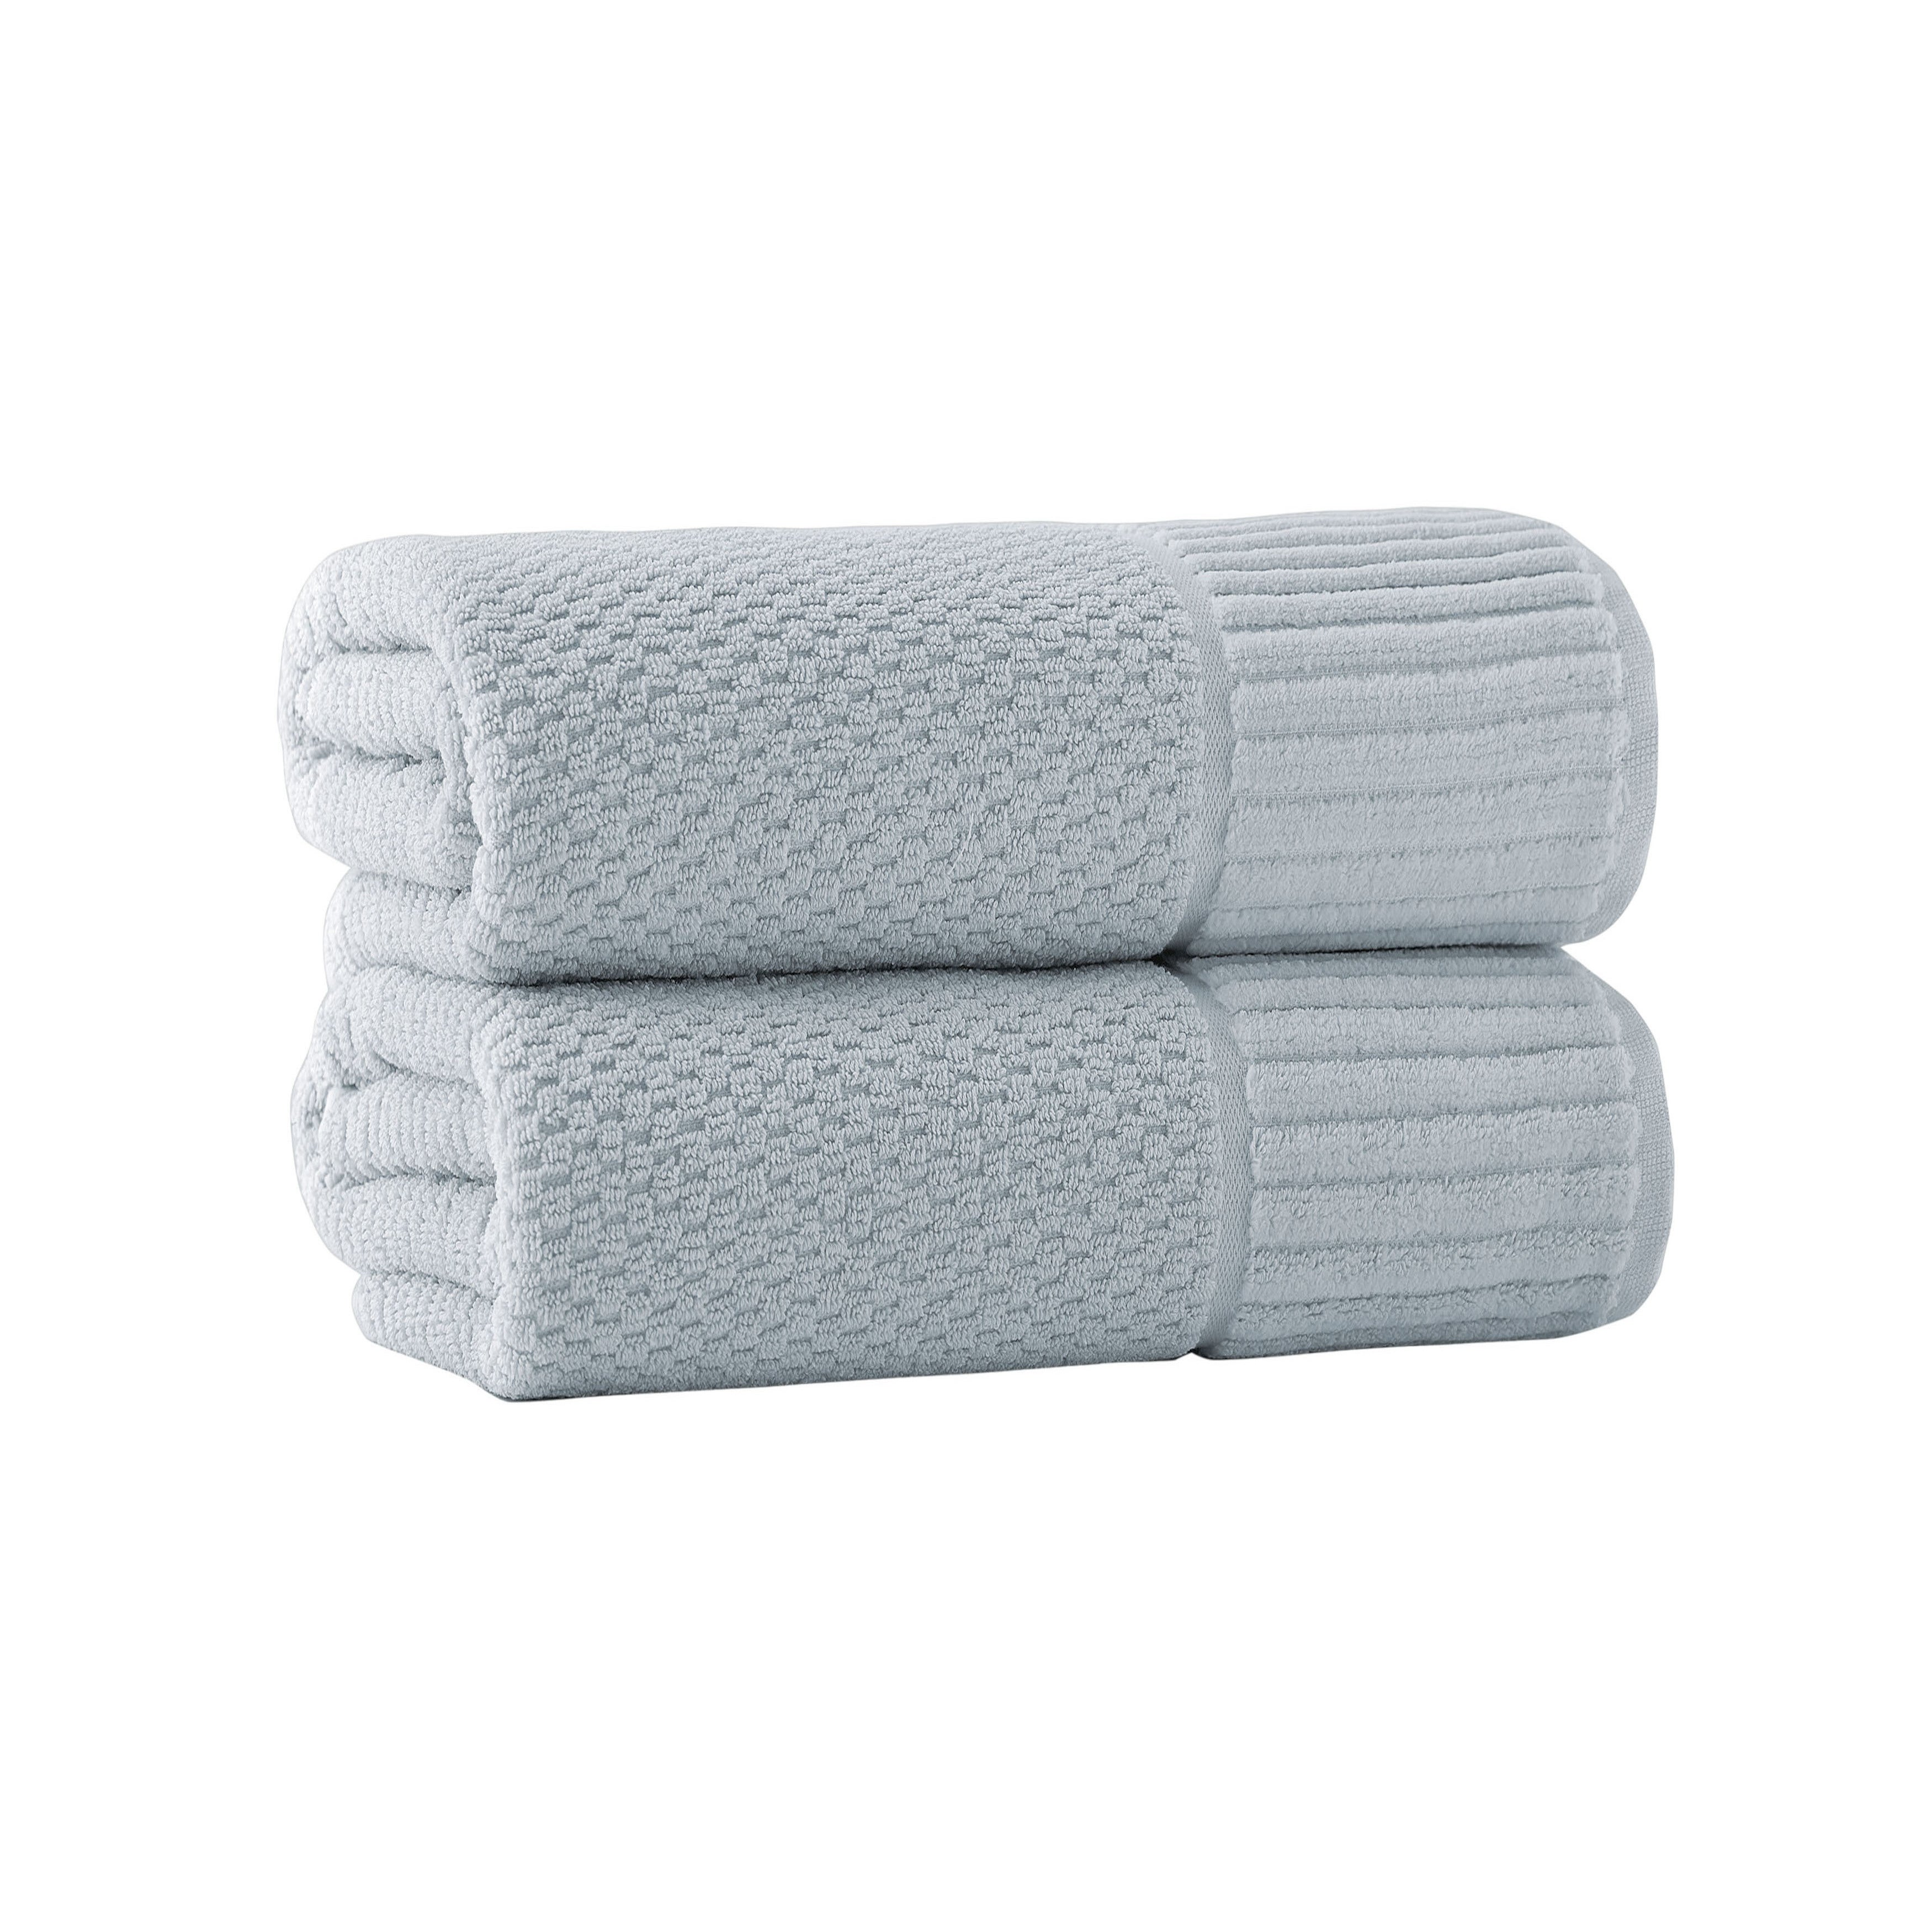 thumbnail 10 - The-Gray-Barn-Scharbauer-Bath-Towels-Set-of-2